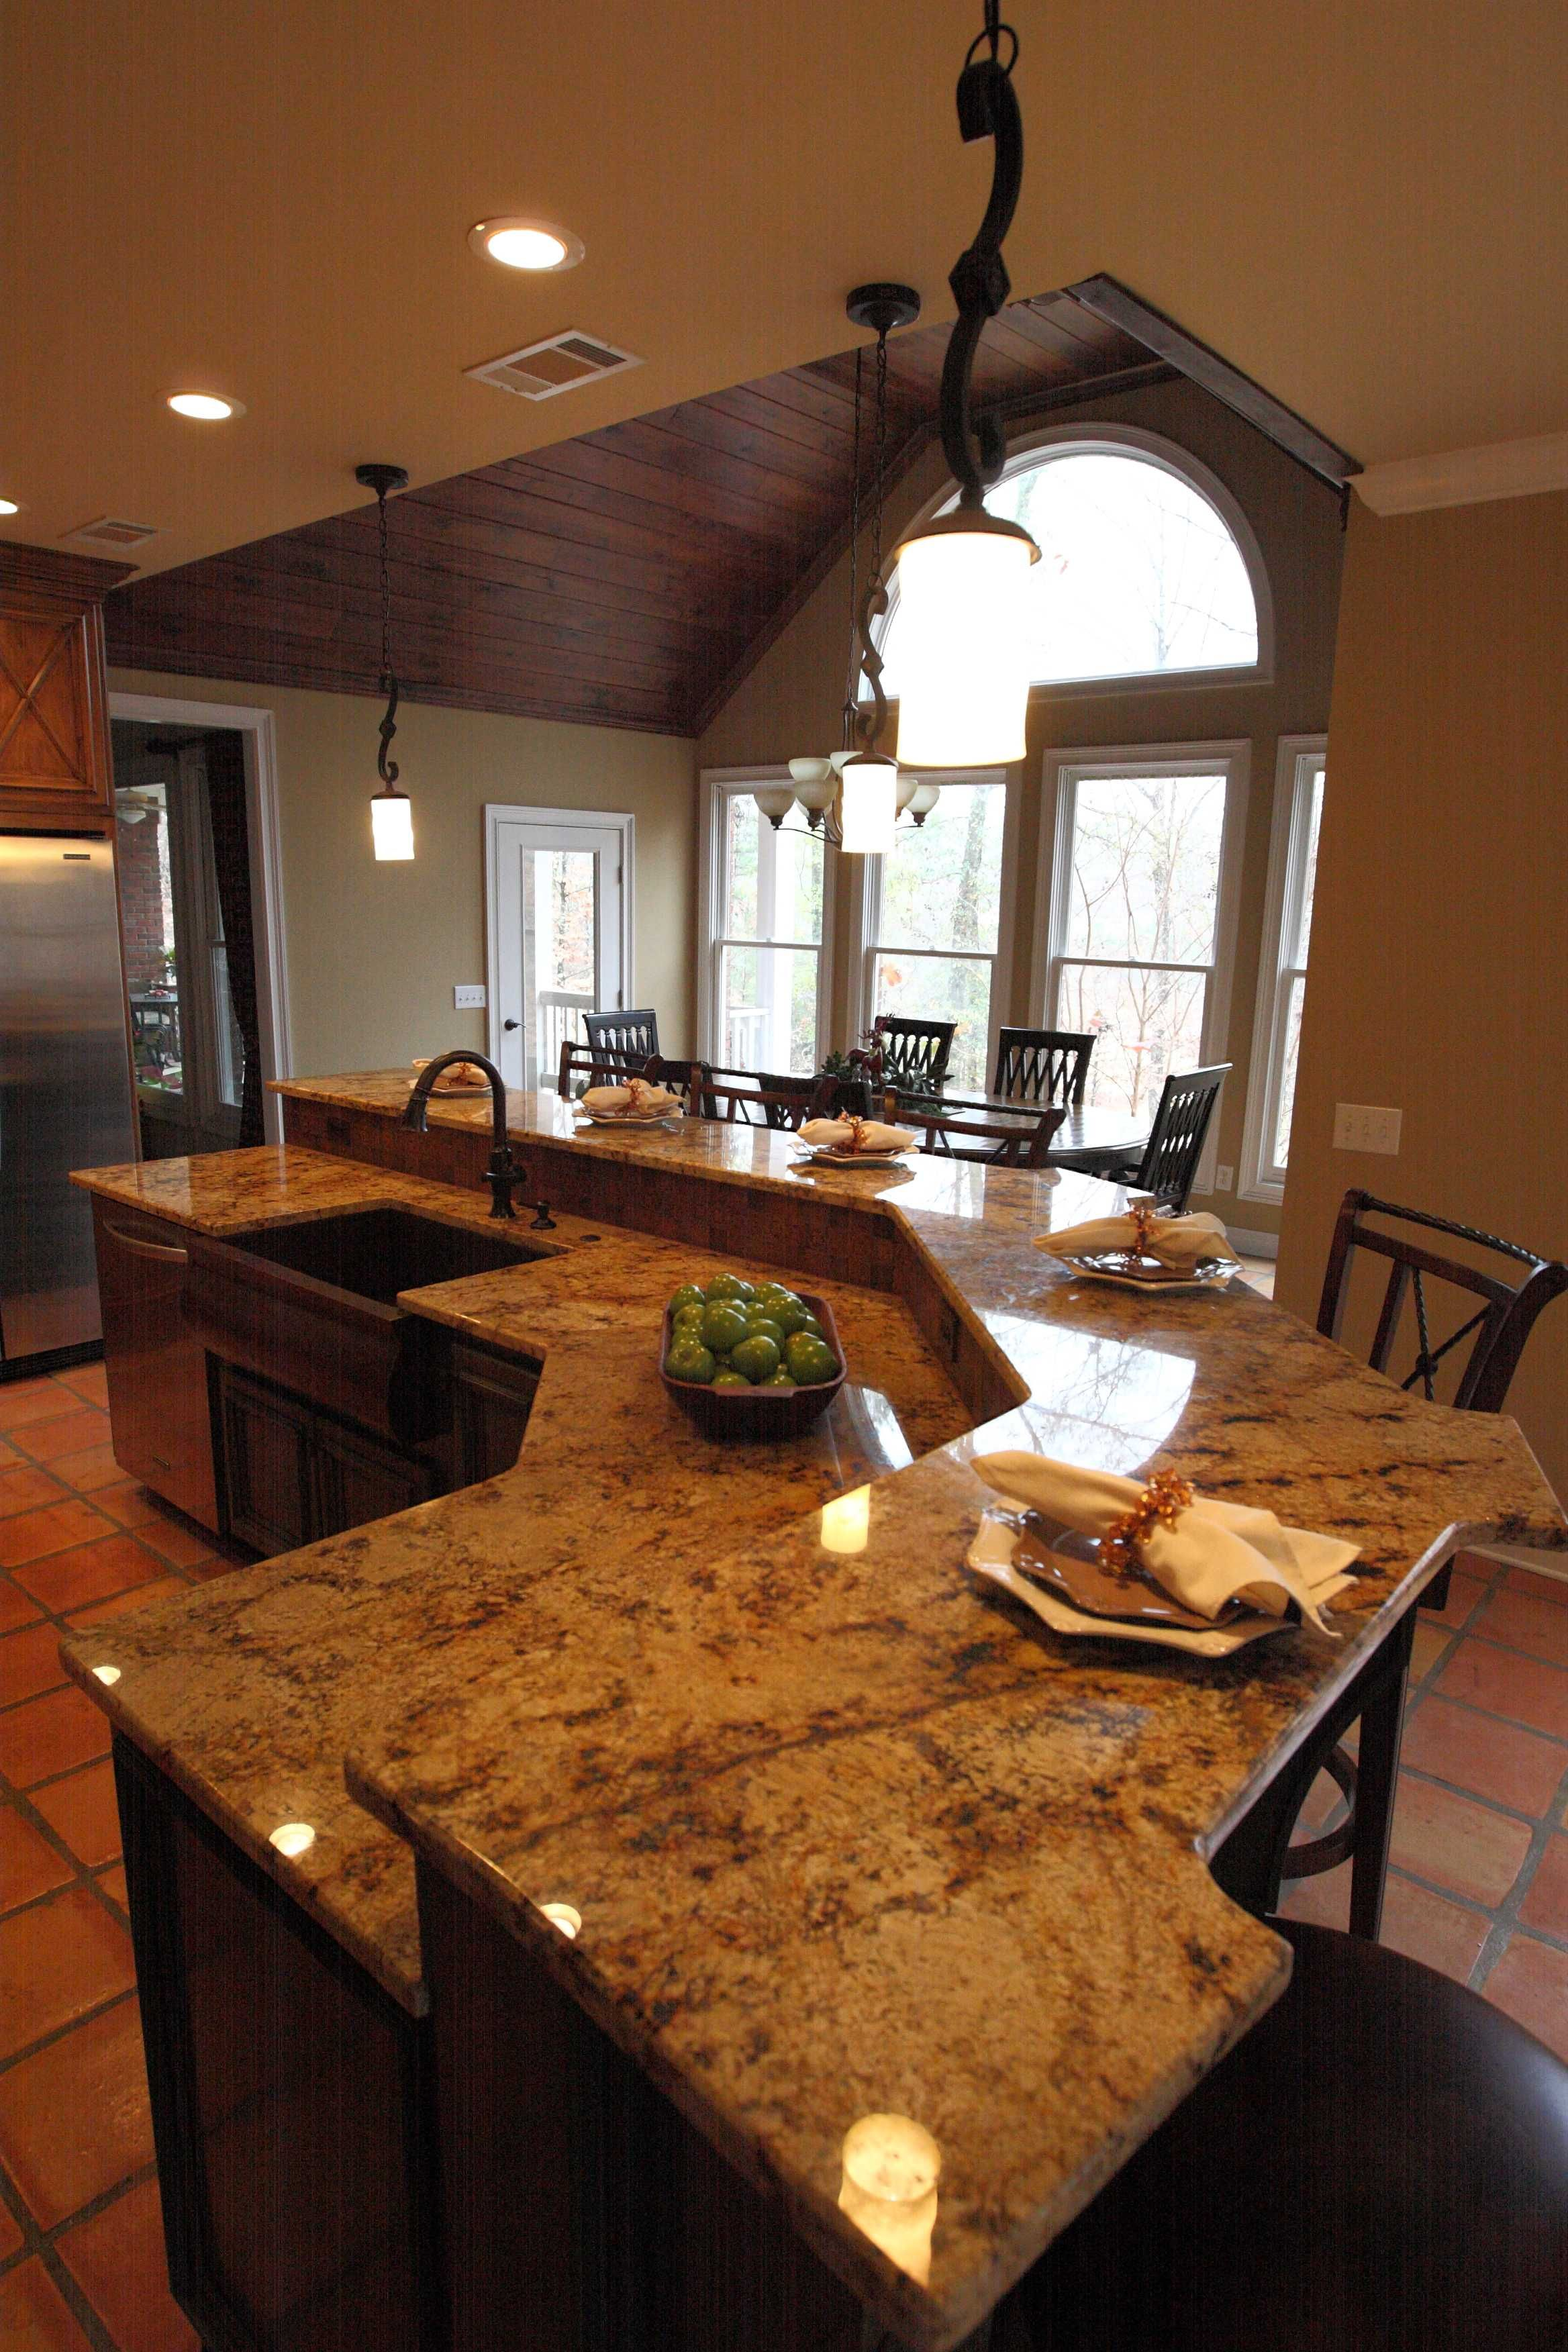 Inspiring Kitchen Island With Sink And Seating Ideas Kitchen Island With Granite Top Large Kitchen Island Freestanding Kitchen Island